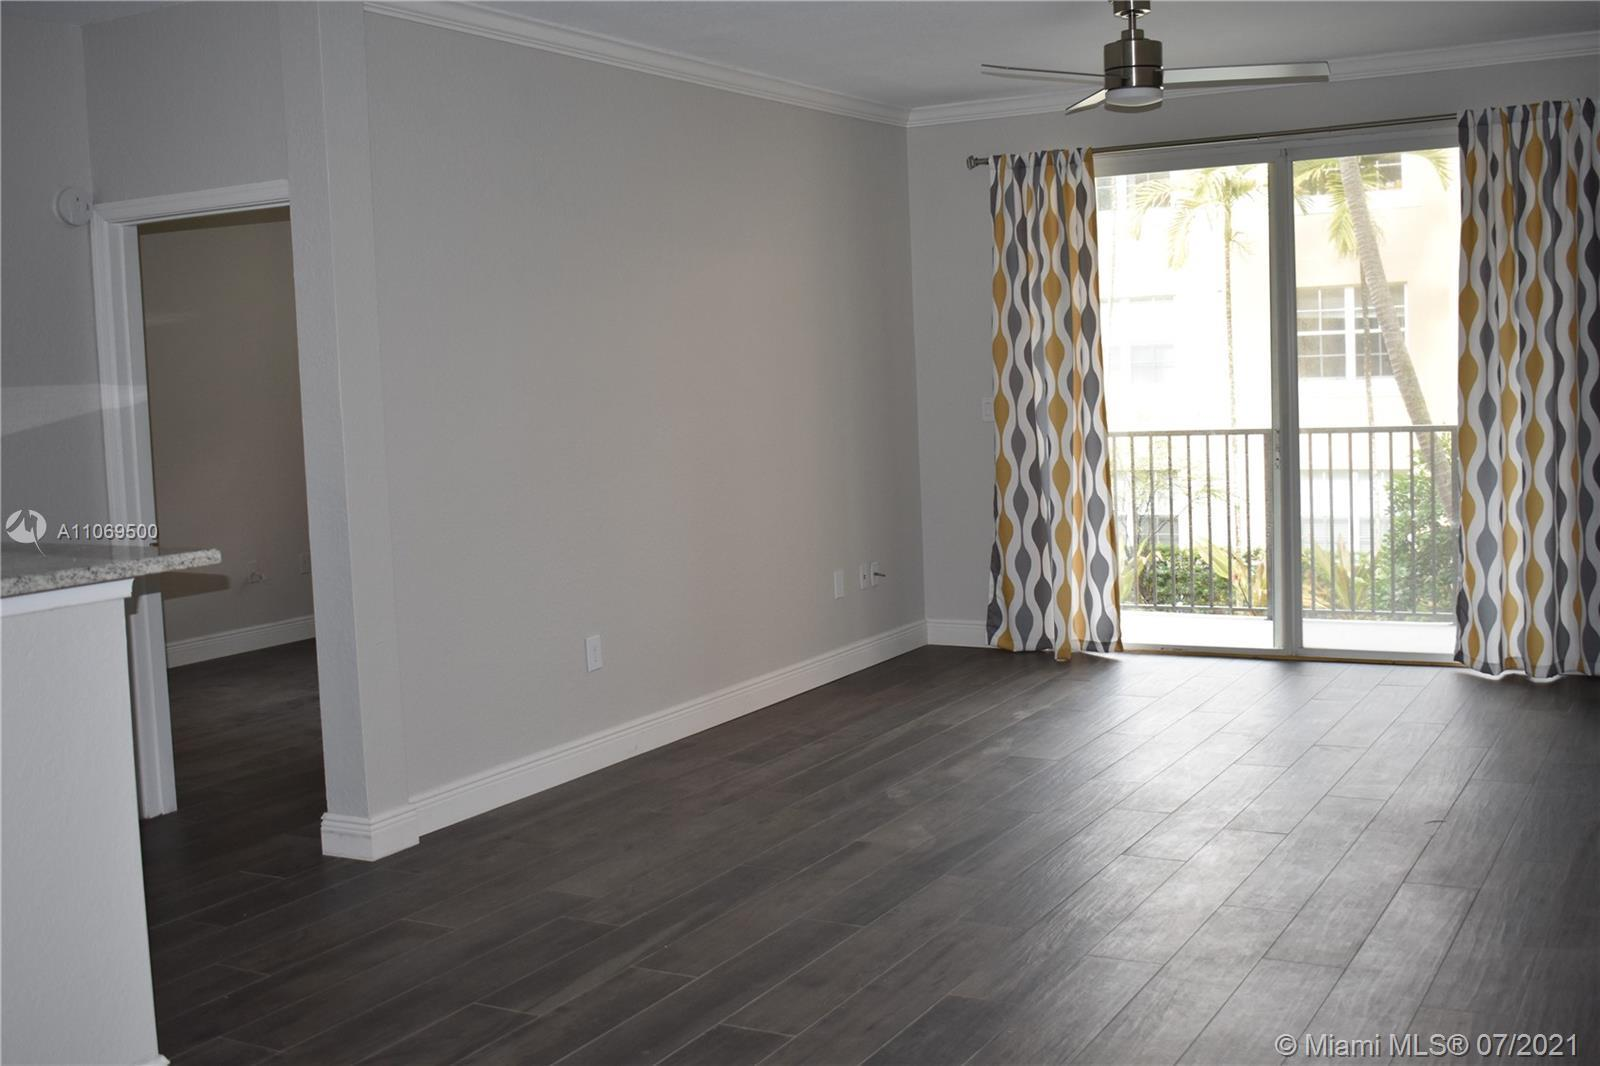 Beautiful and modern 2 bedroom, 2 bath unit overlooking a beautiful courtyard with fountain and barb